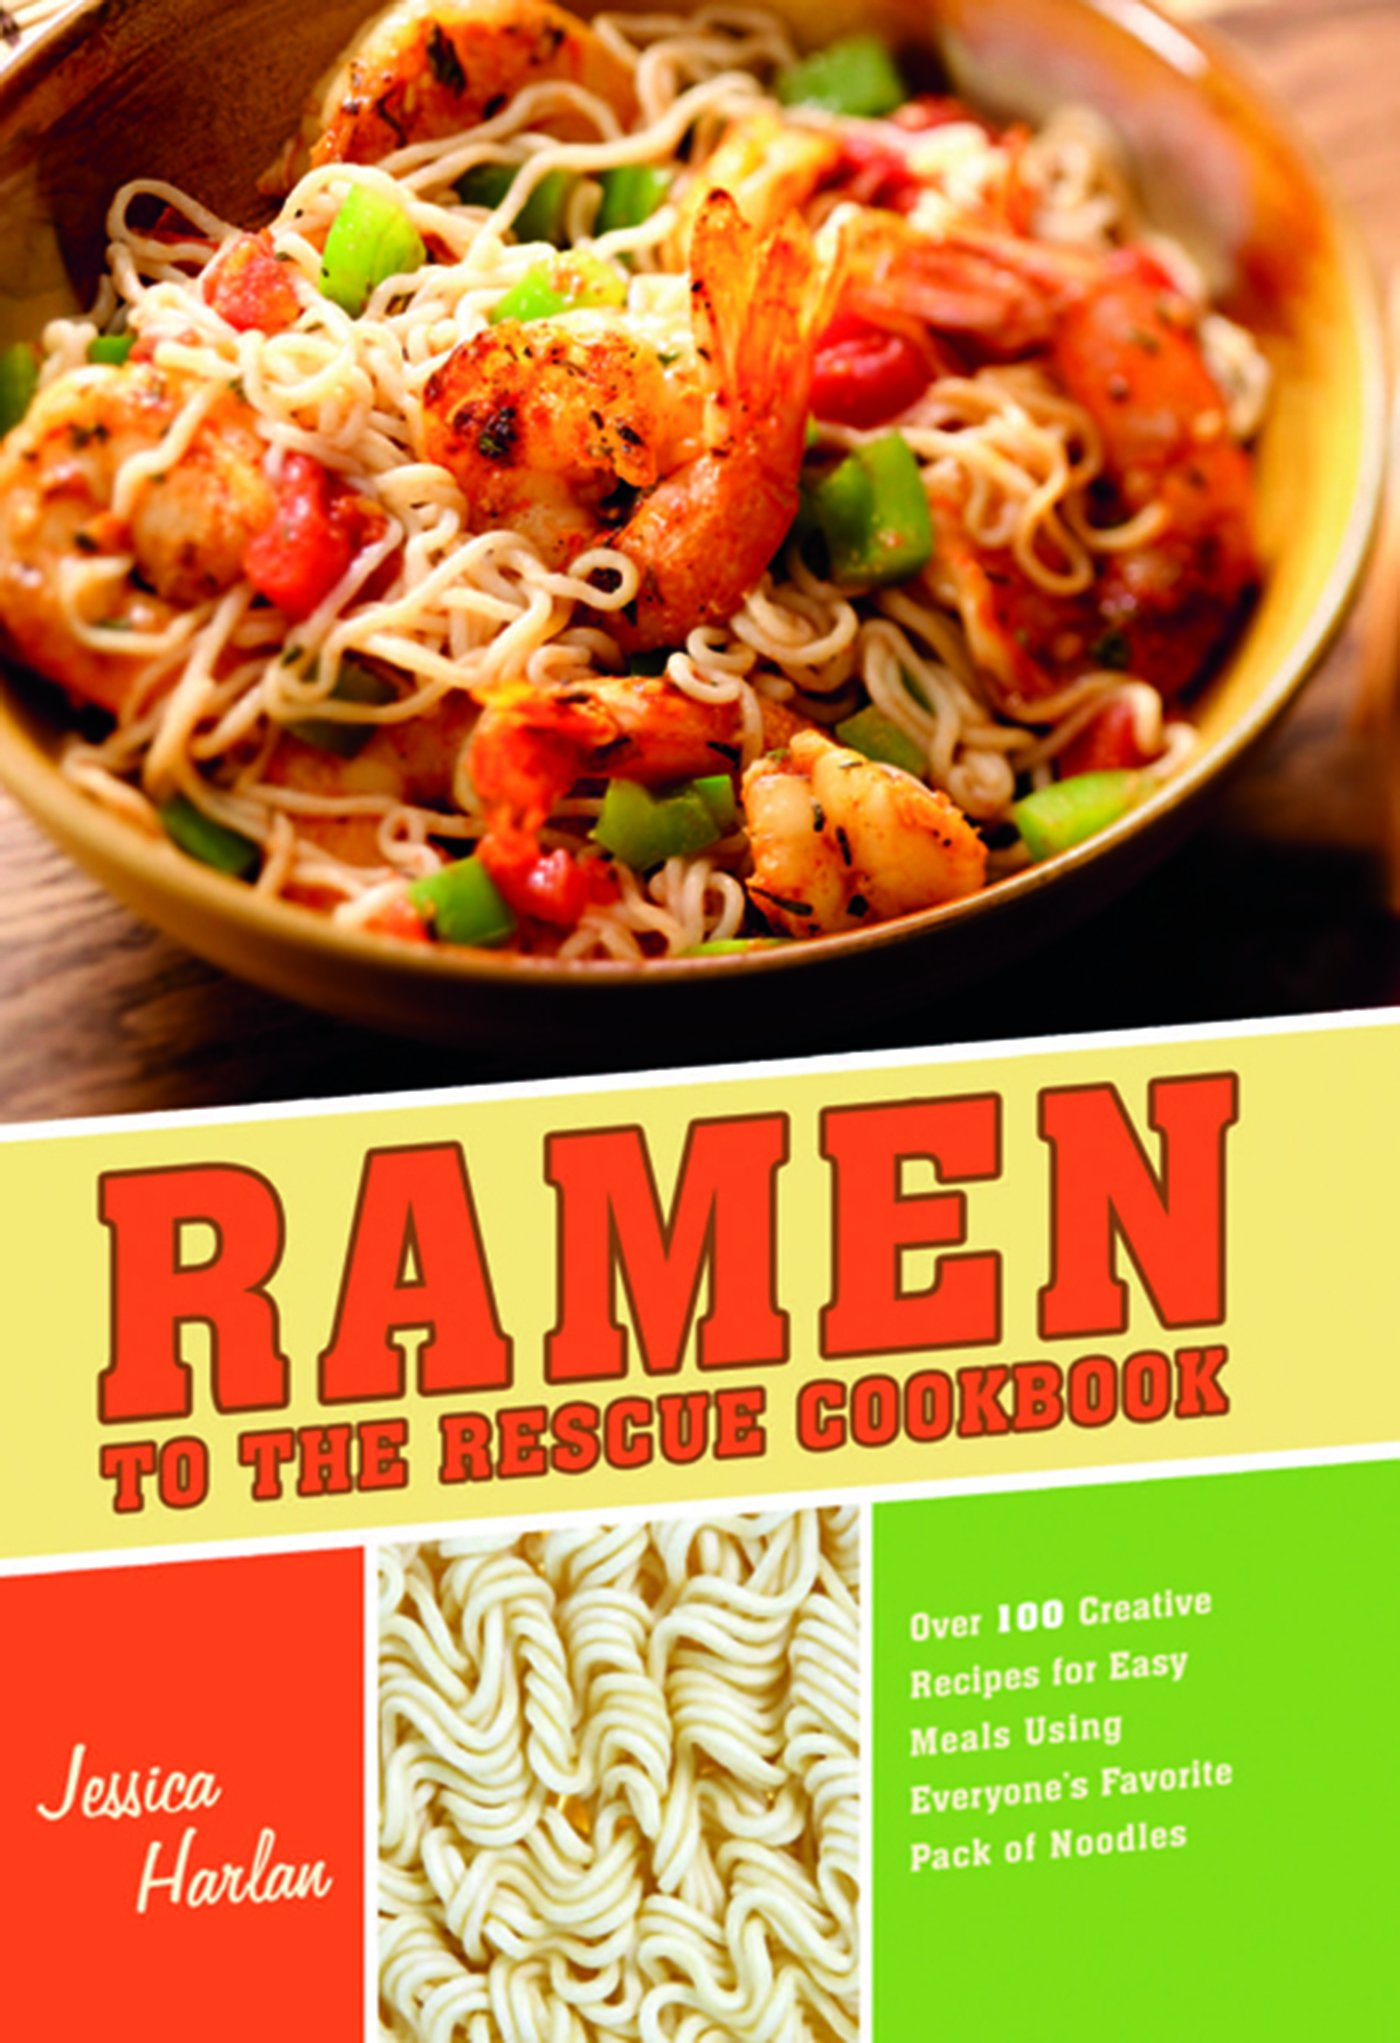 Ramen to the Rescue Cookbook: 120 Creative Recipes for Easy Meals Using  Everyone's Favorite Pack of Noodles: Jessica Harlan: 9781569759905:  Amazon.com: ...